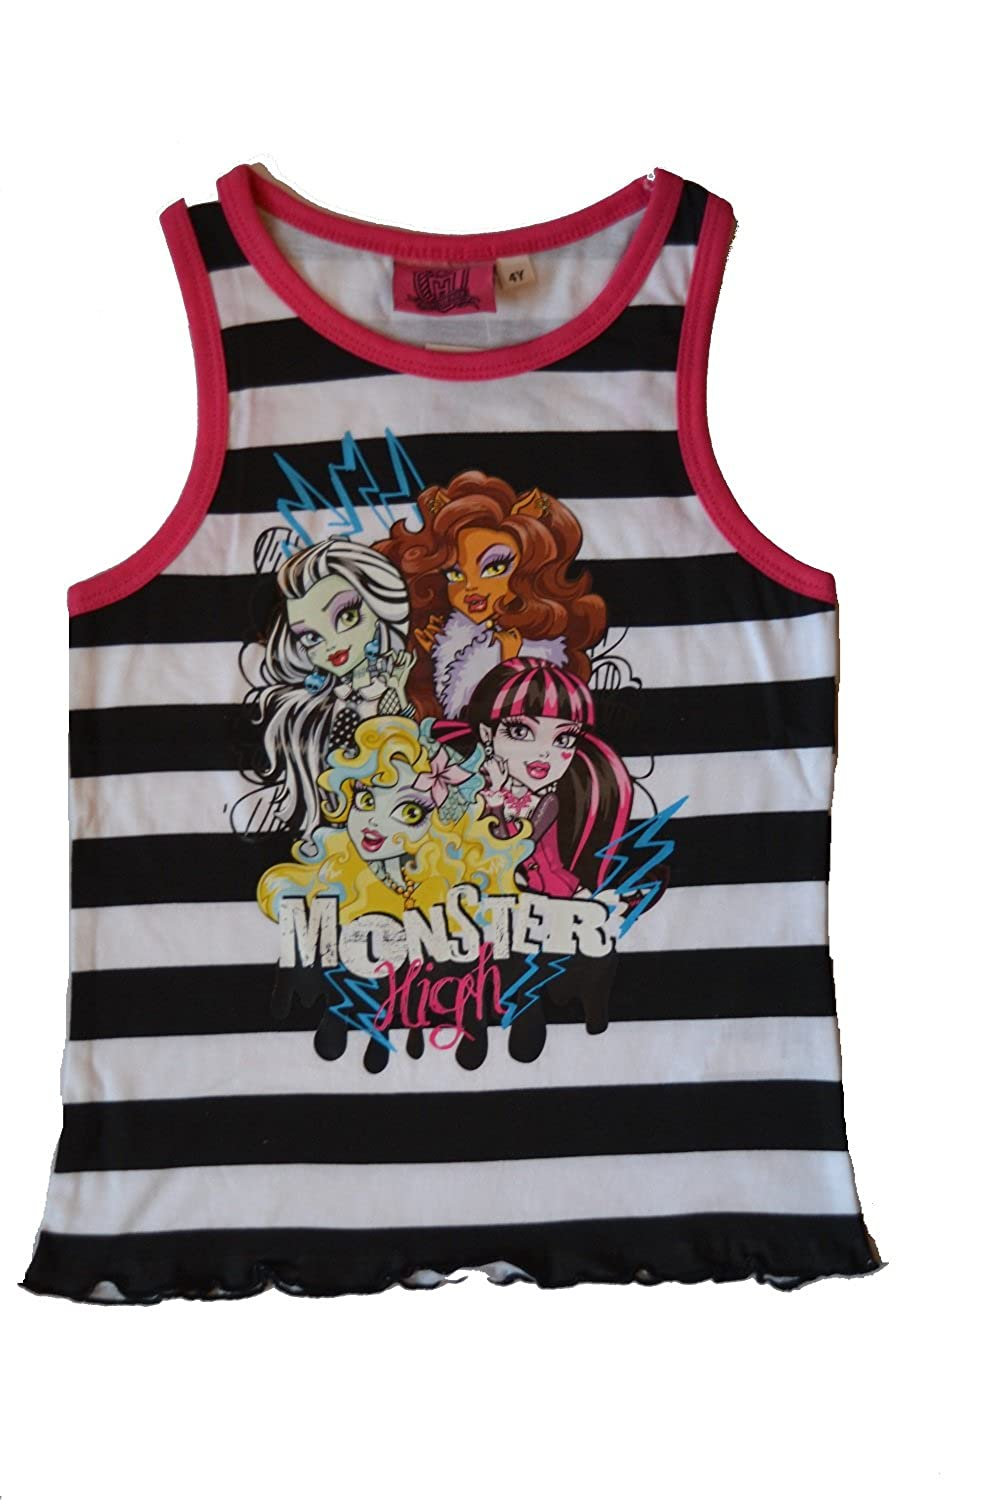 *** Débardeur T-Shirt fille été Monster High *** Du 4 au 12 ans